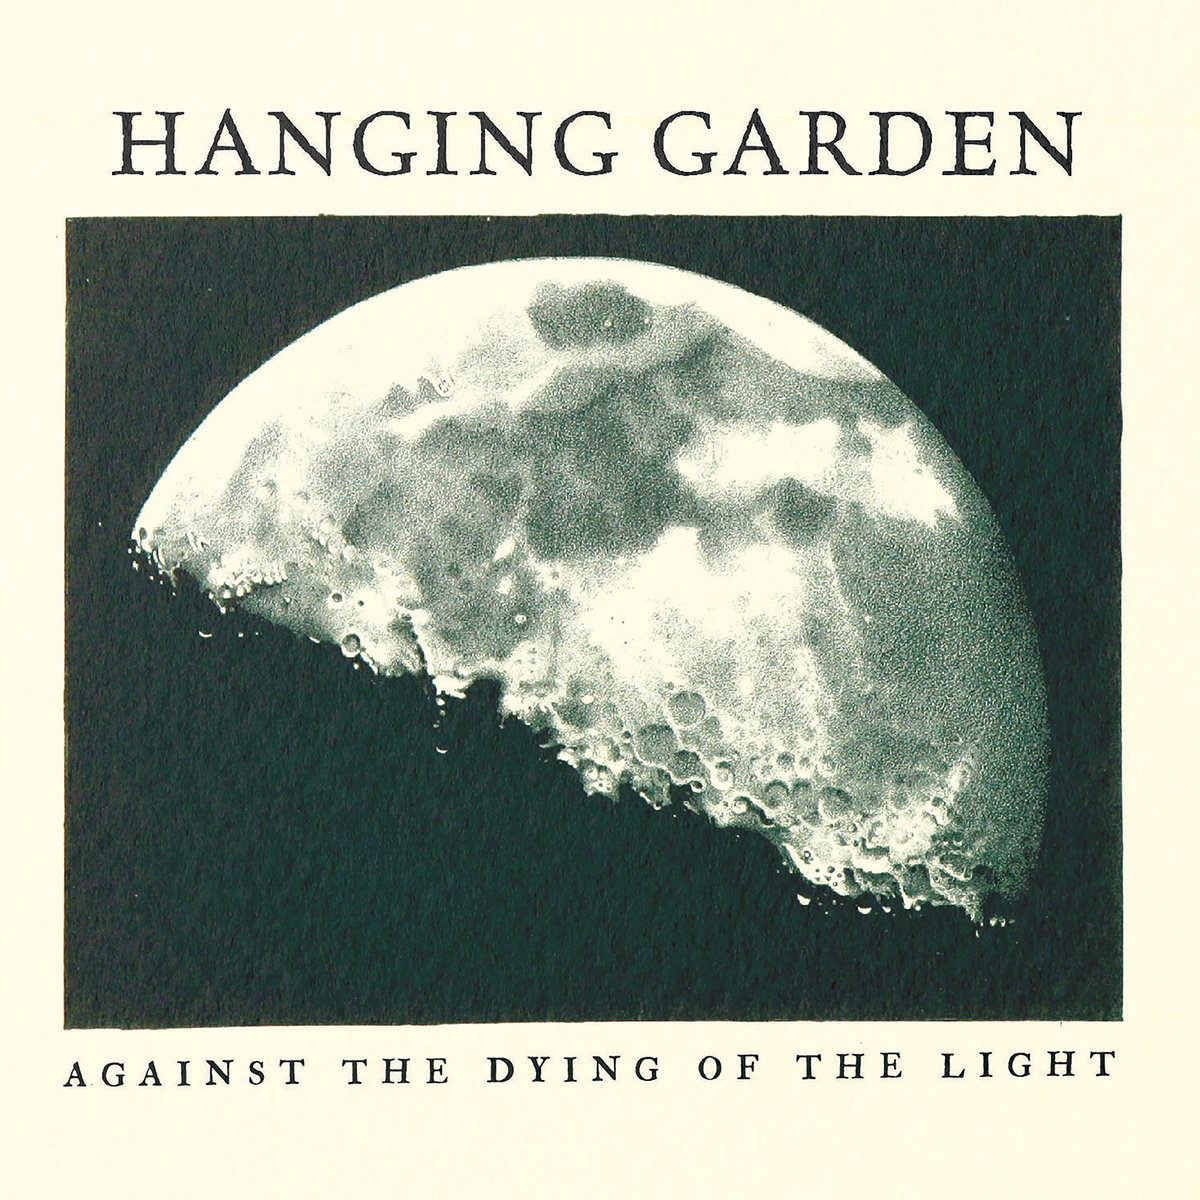 HANGING GARDEN Against The Dying Of Light